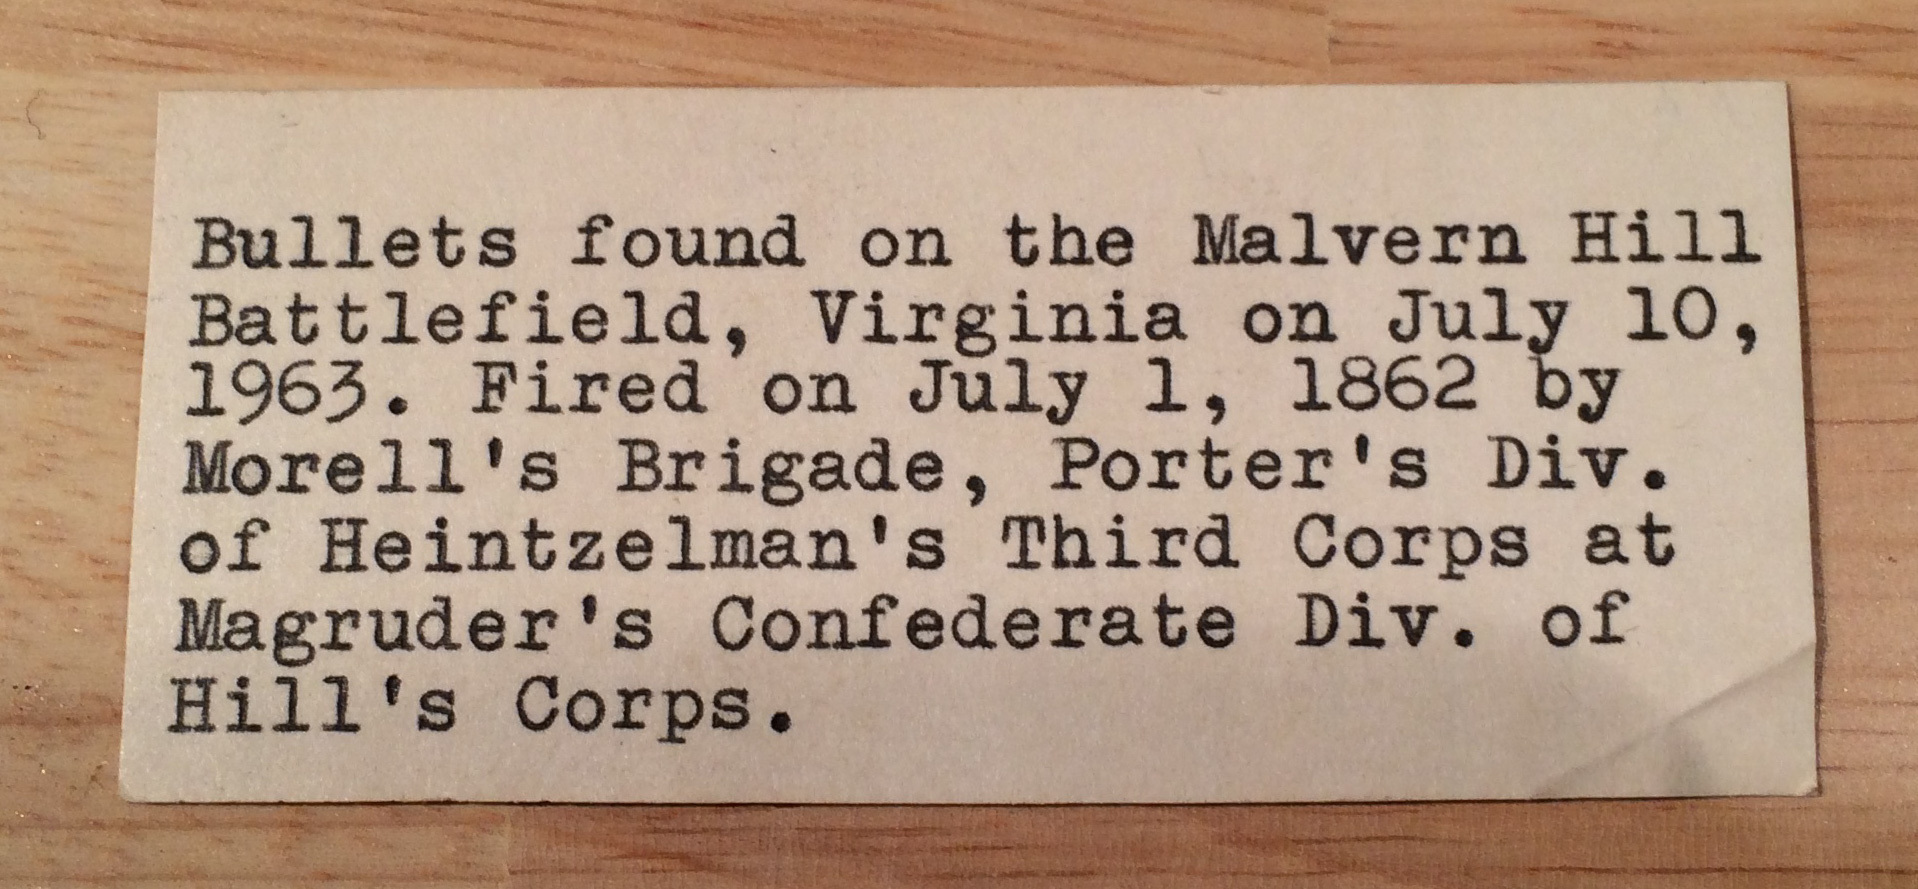 JUST ADDED ON 1/19 - THE BATTLE OF MALVERN HILL / AREA OF MAGRUDER'S ADVANCE - Two Fired .69 Caliber Round Balls or Case Shot  - Found July 10, 1963